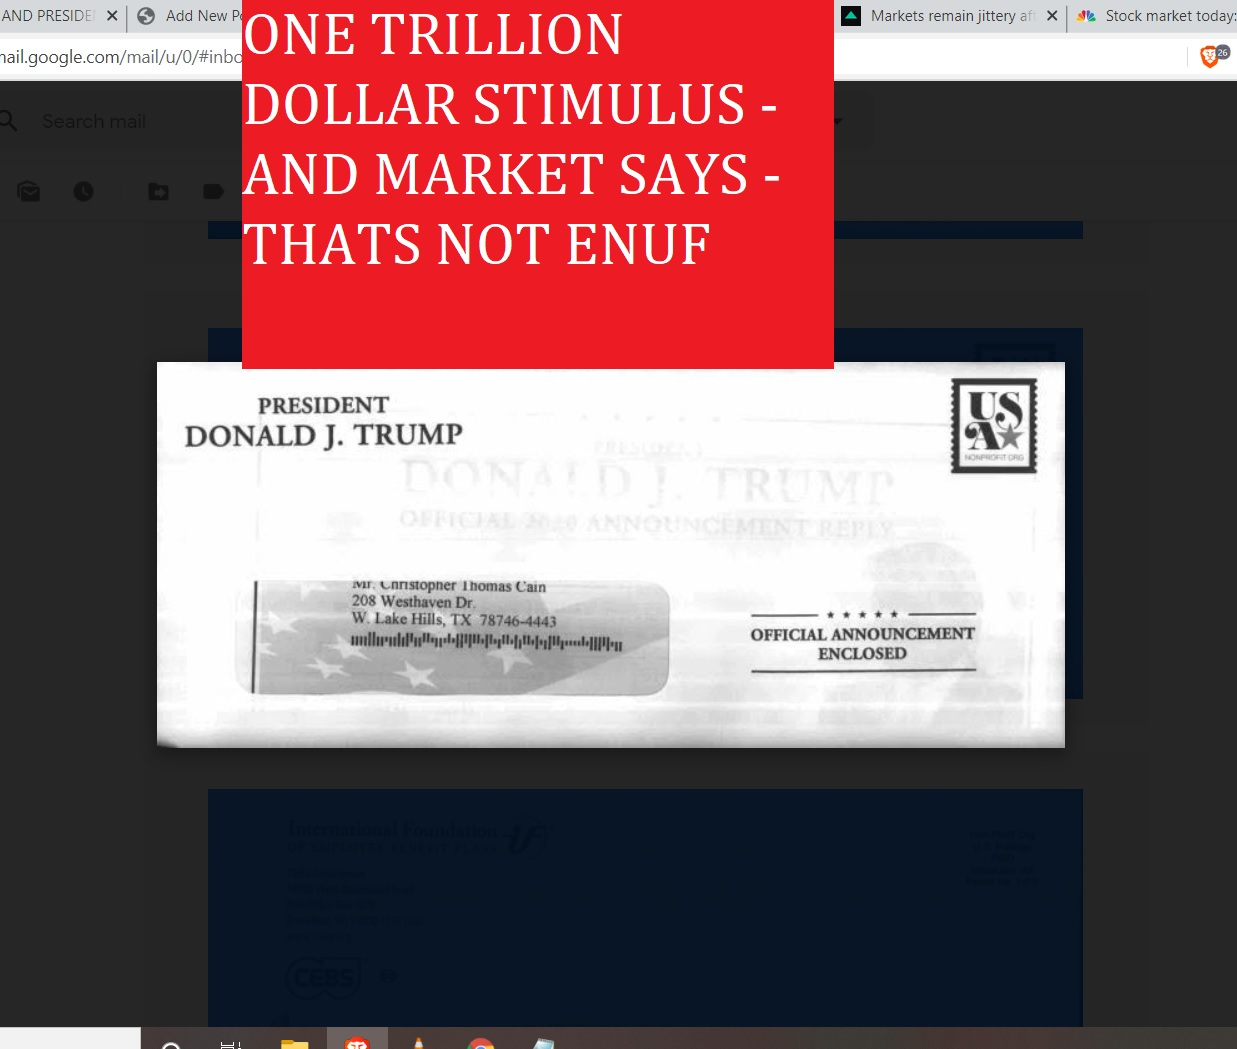 ONE TRILLION DOLAR STIMULUS AND MARKET SAYS THATS NOT ENUF - MARACH 18 2002 DONALD TRUMP AND CV